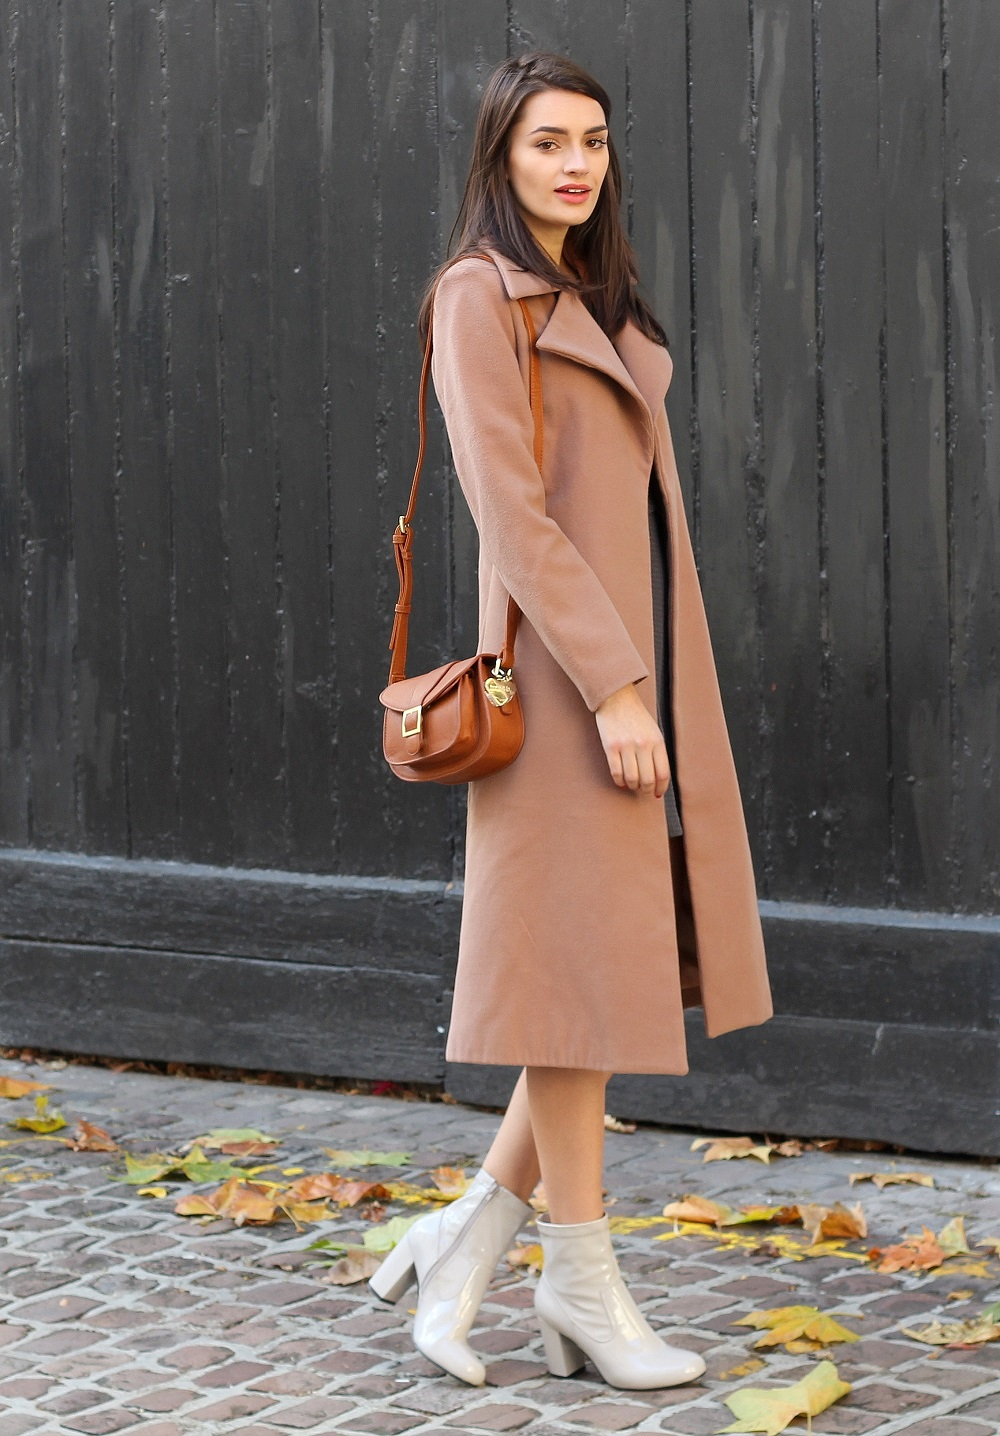 peexo fashion blogger wearing camel coat and patent grey boots